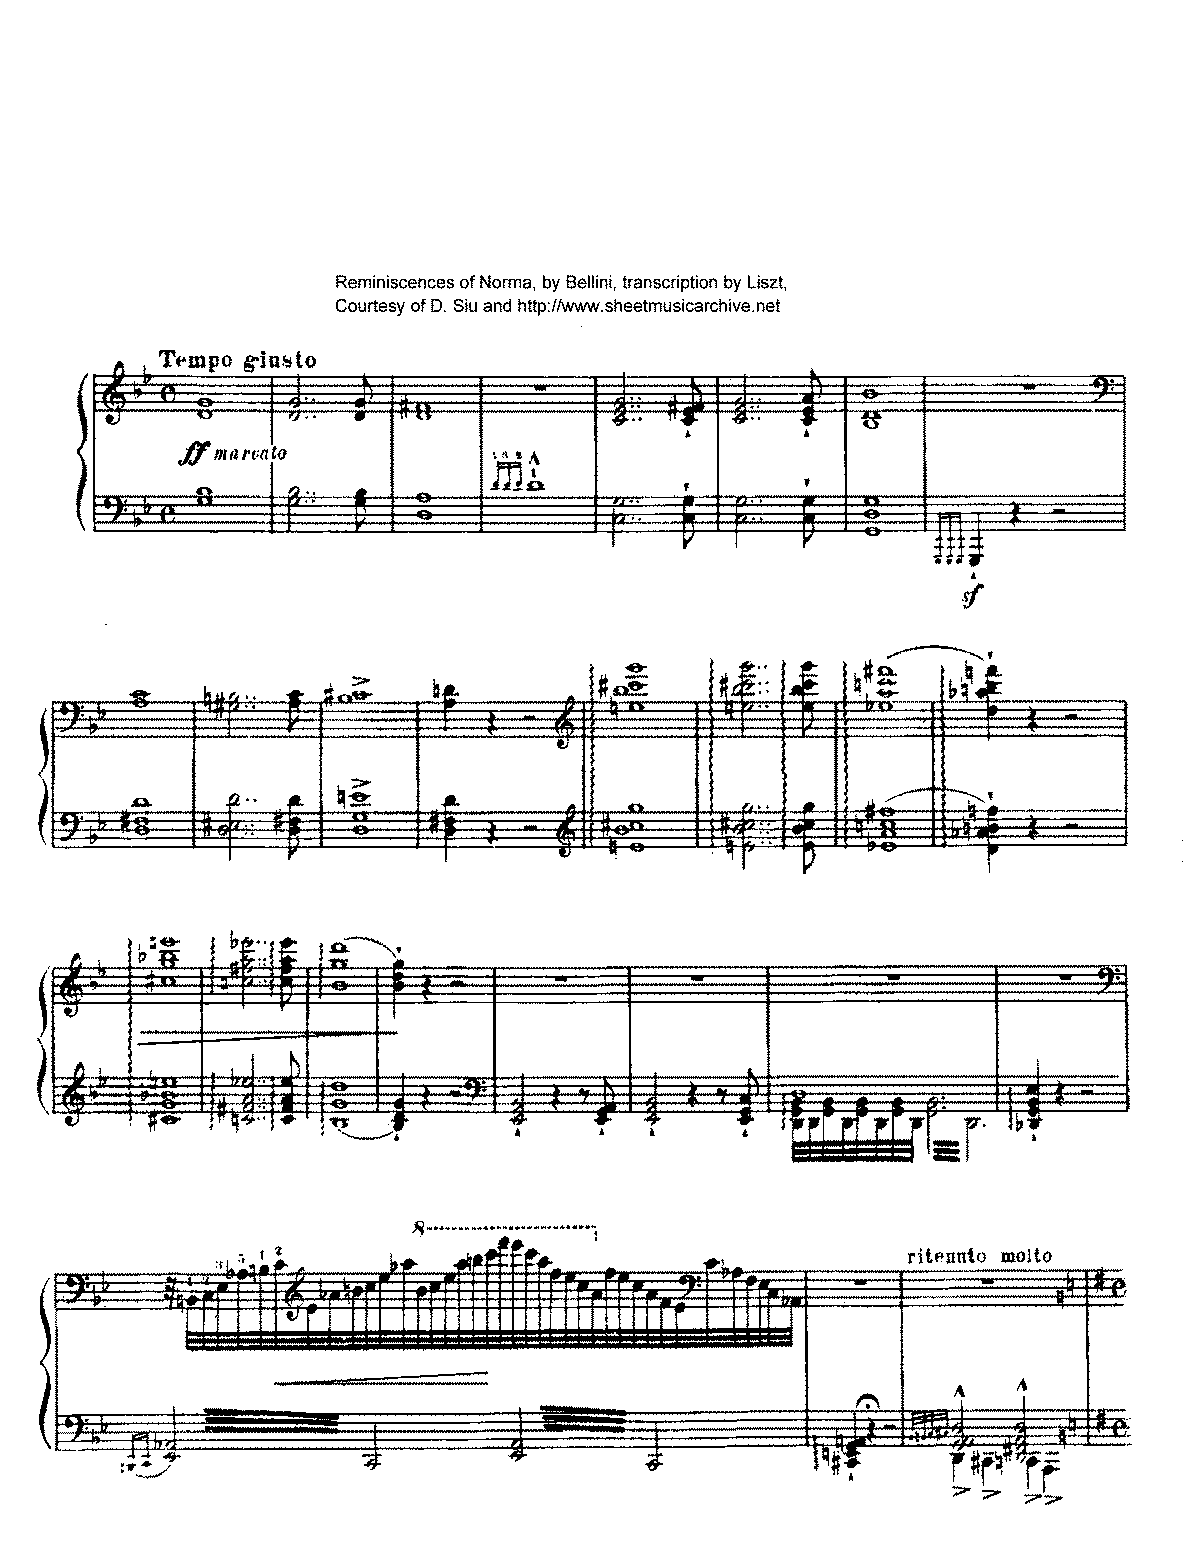 Liszt - Reminiscences of Norma.pdf